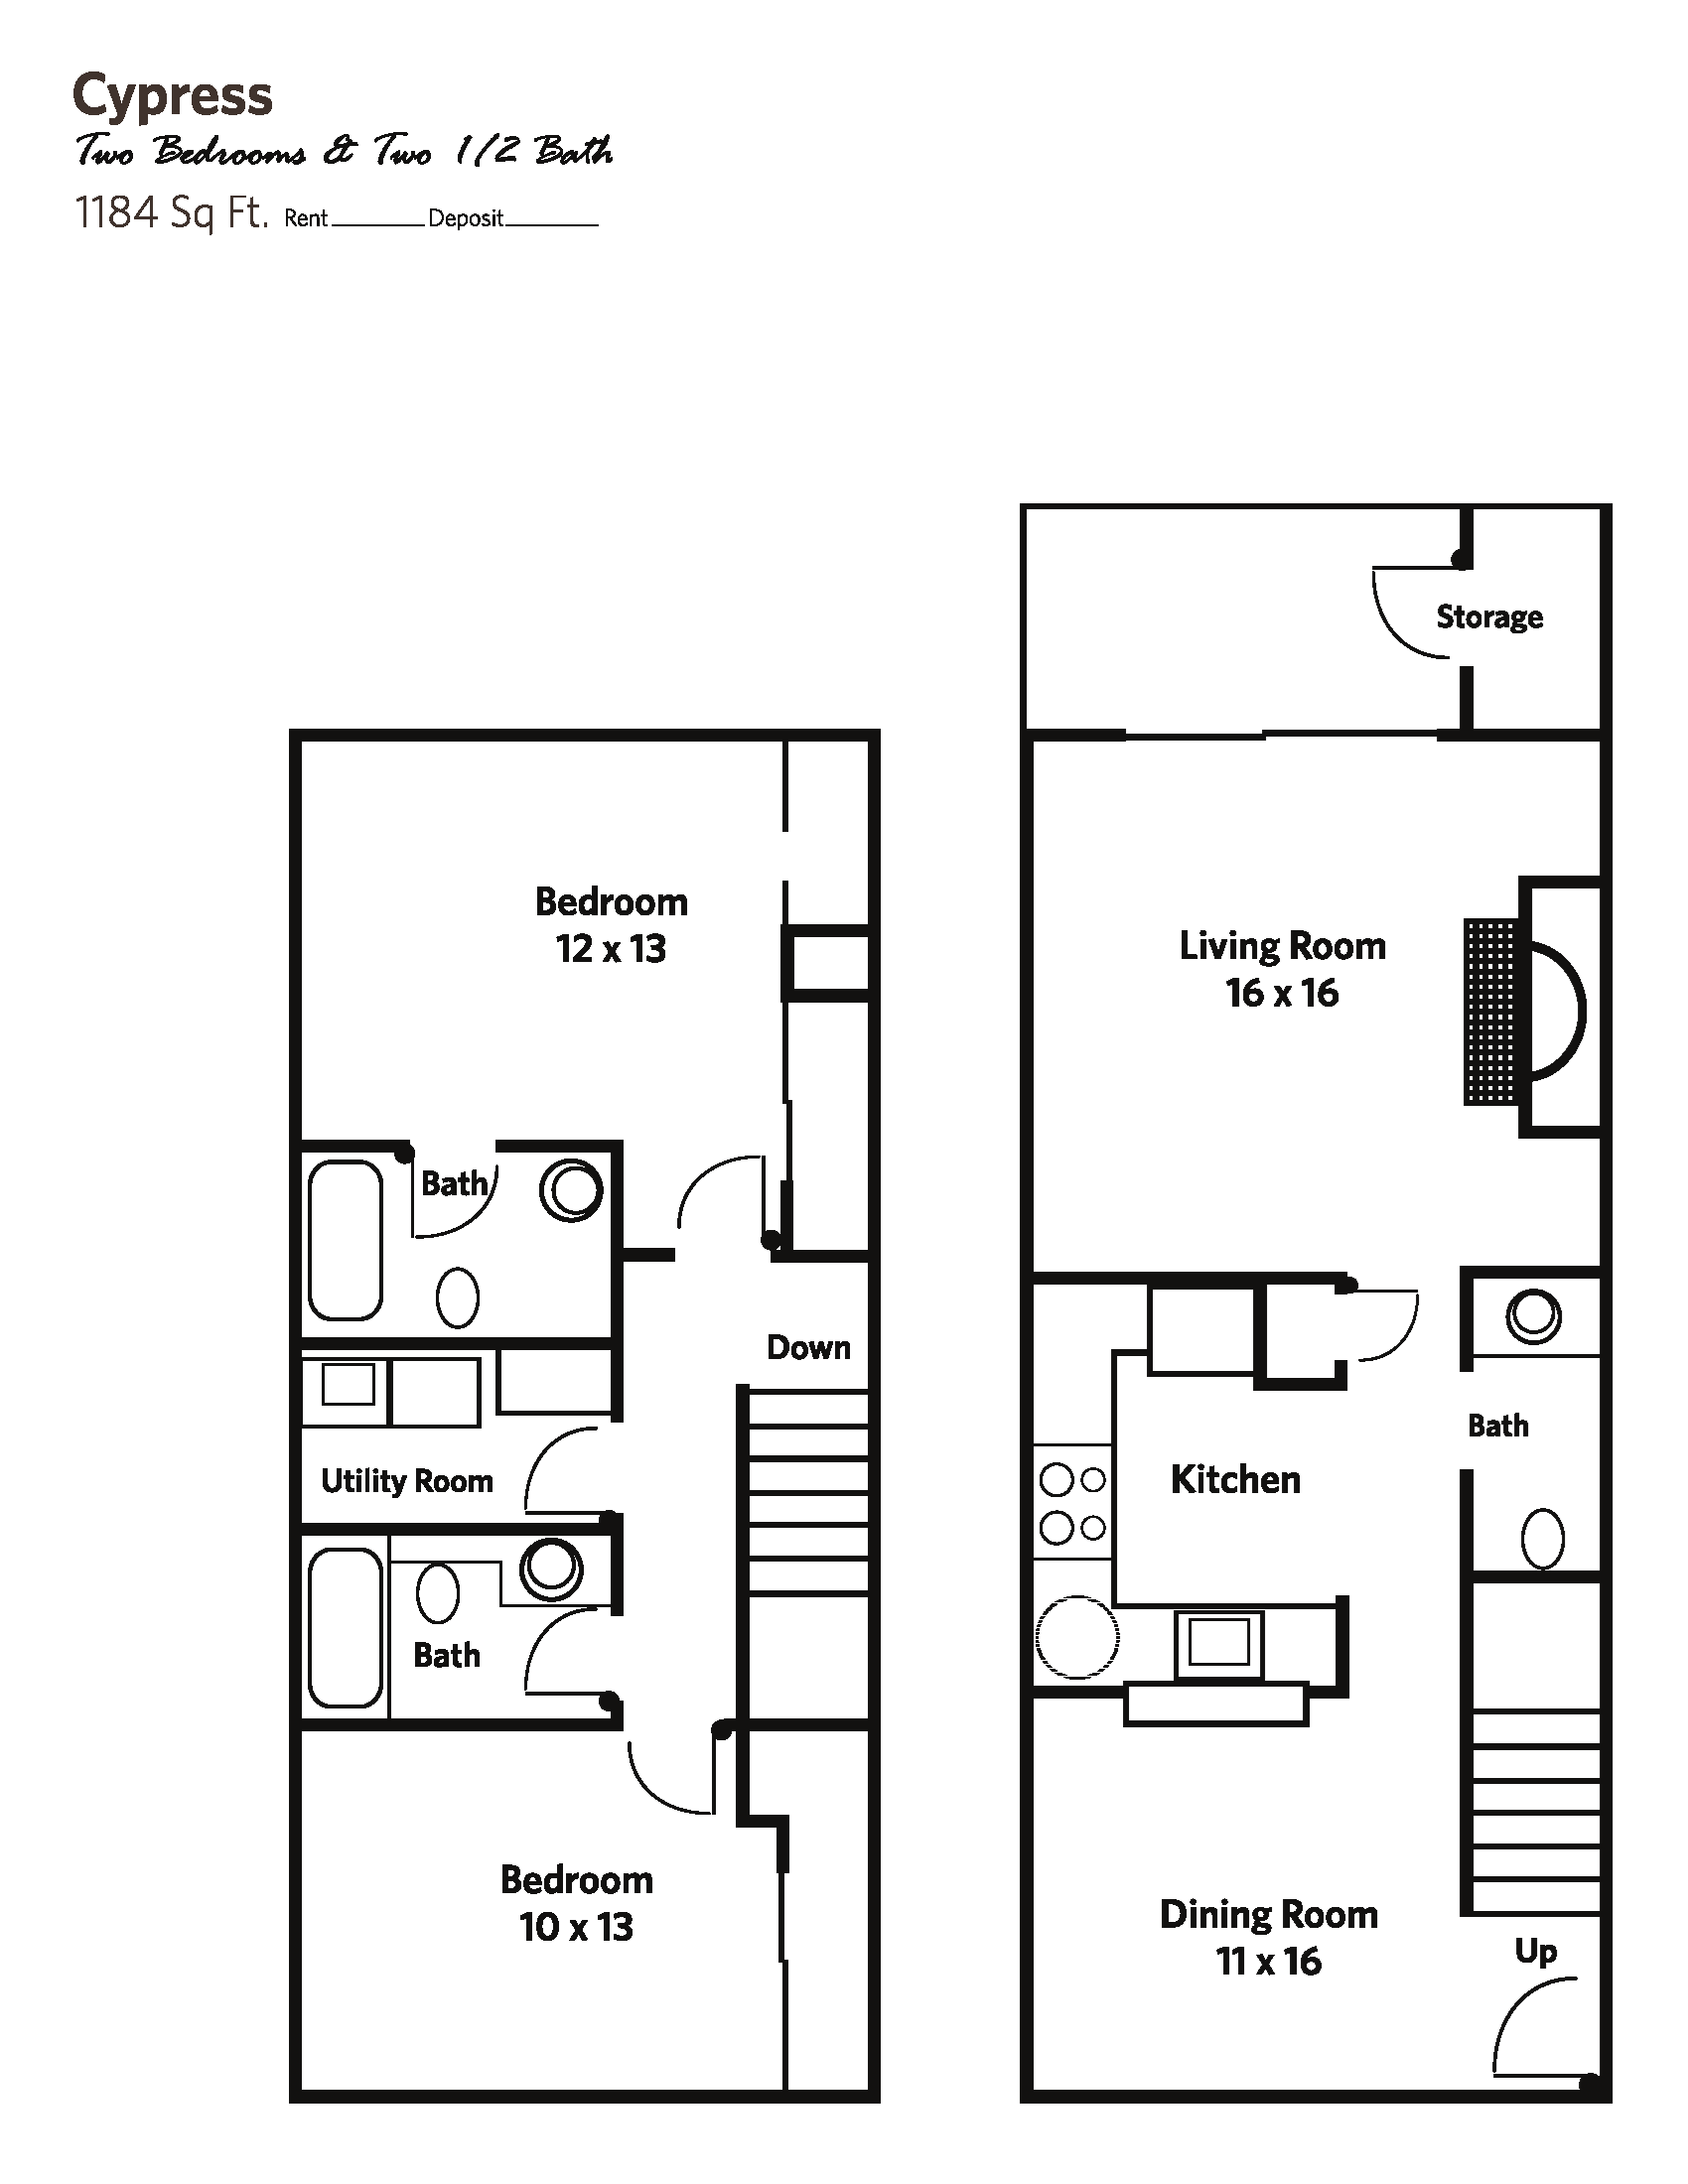 CYPRESS (2 bed + 2 bath w/view) - Townhomes Floor Plan 6